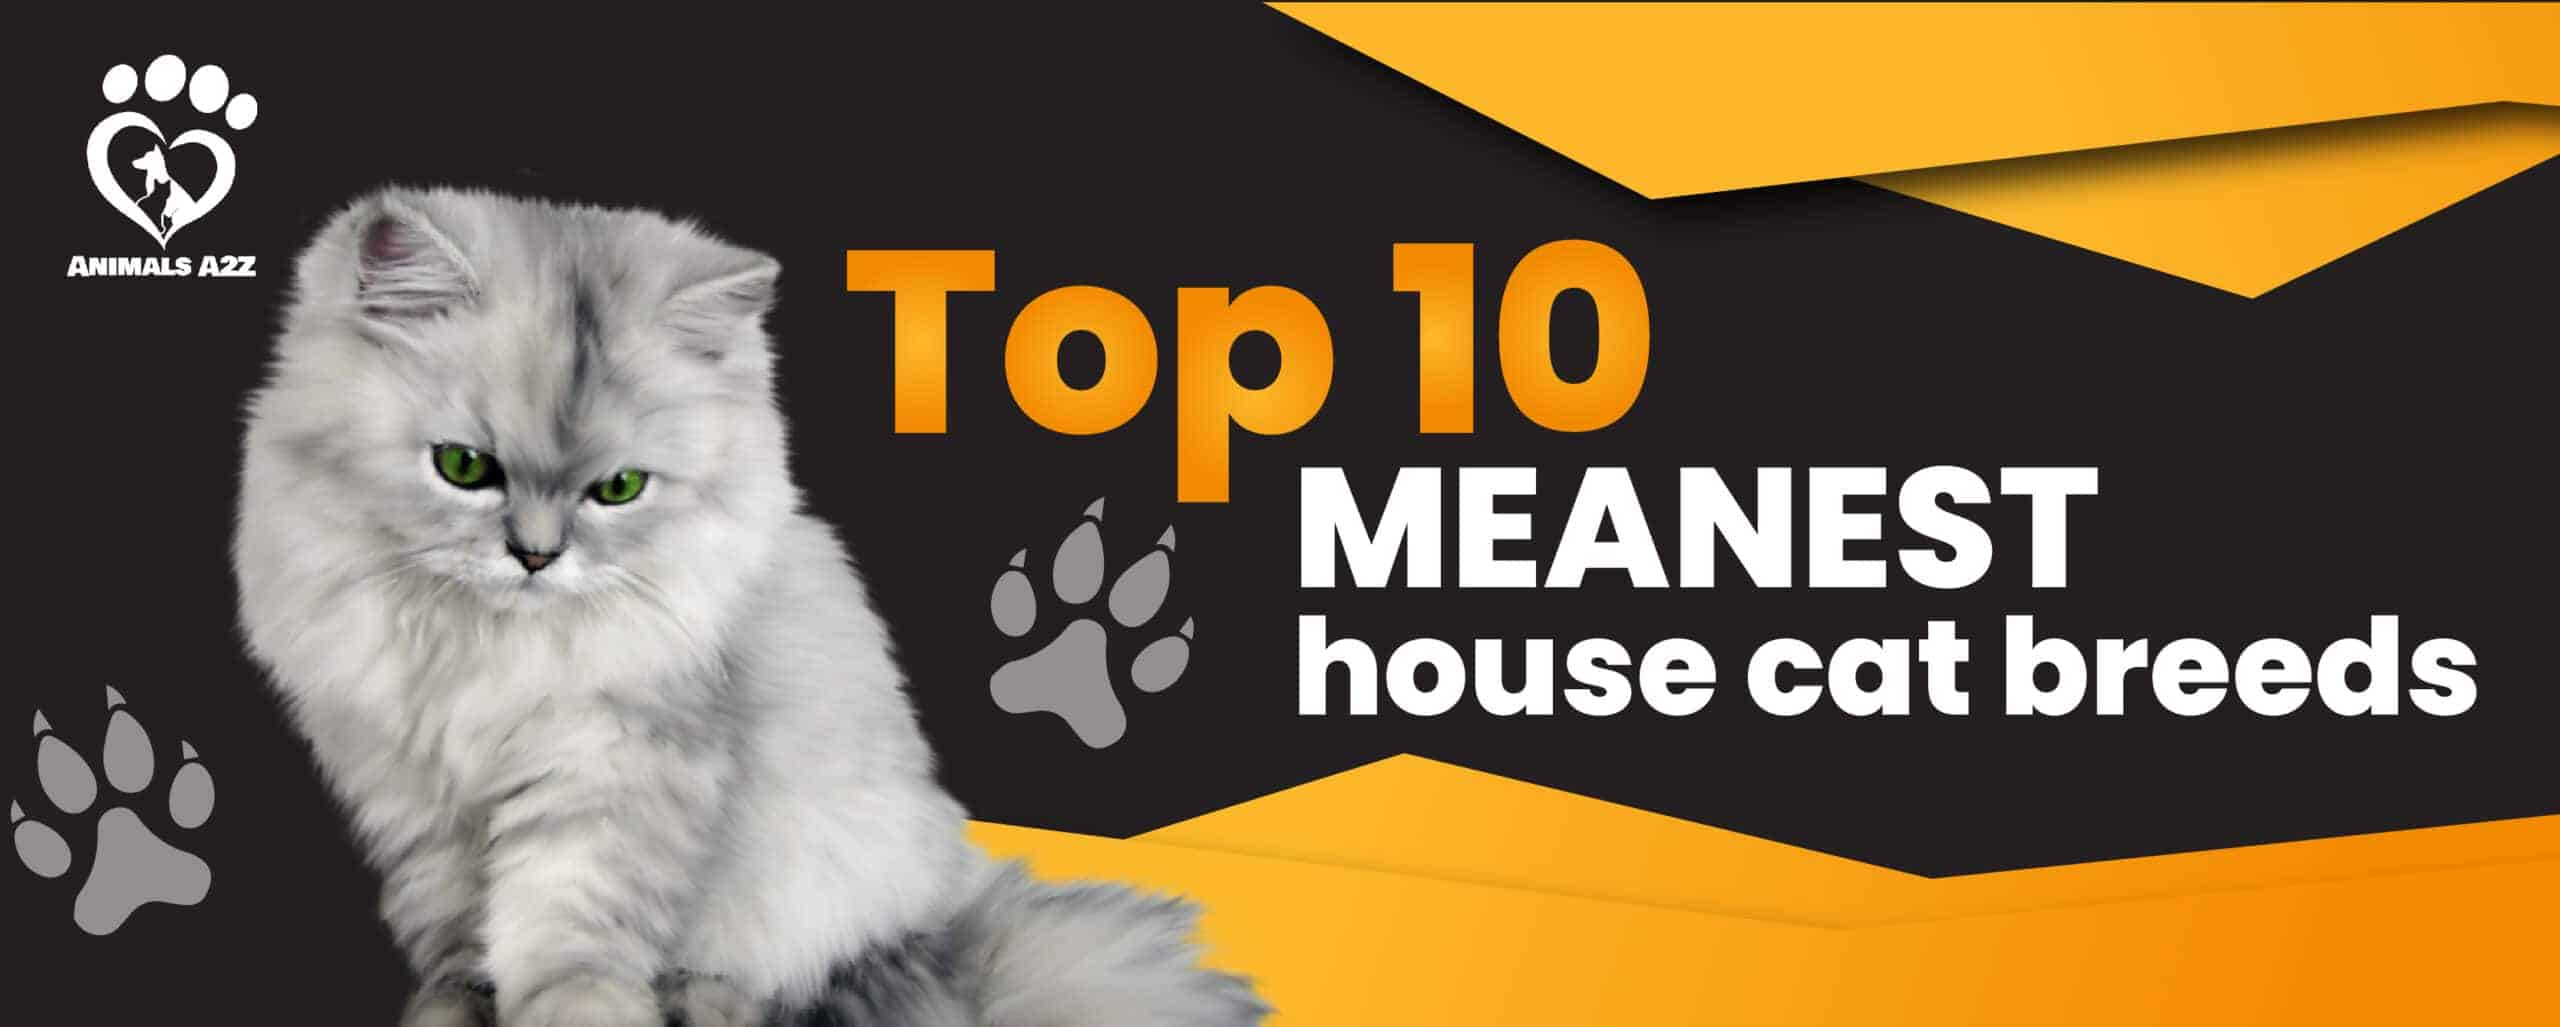 top 10 meanest cat breeds